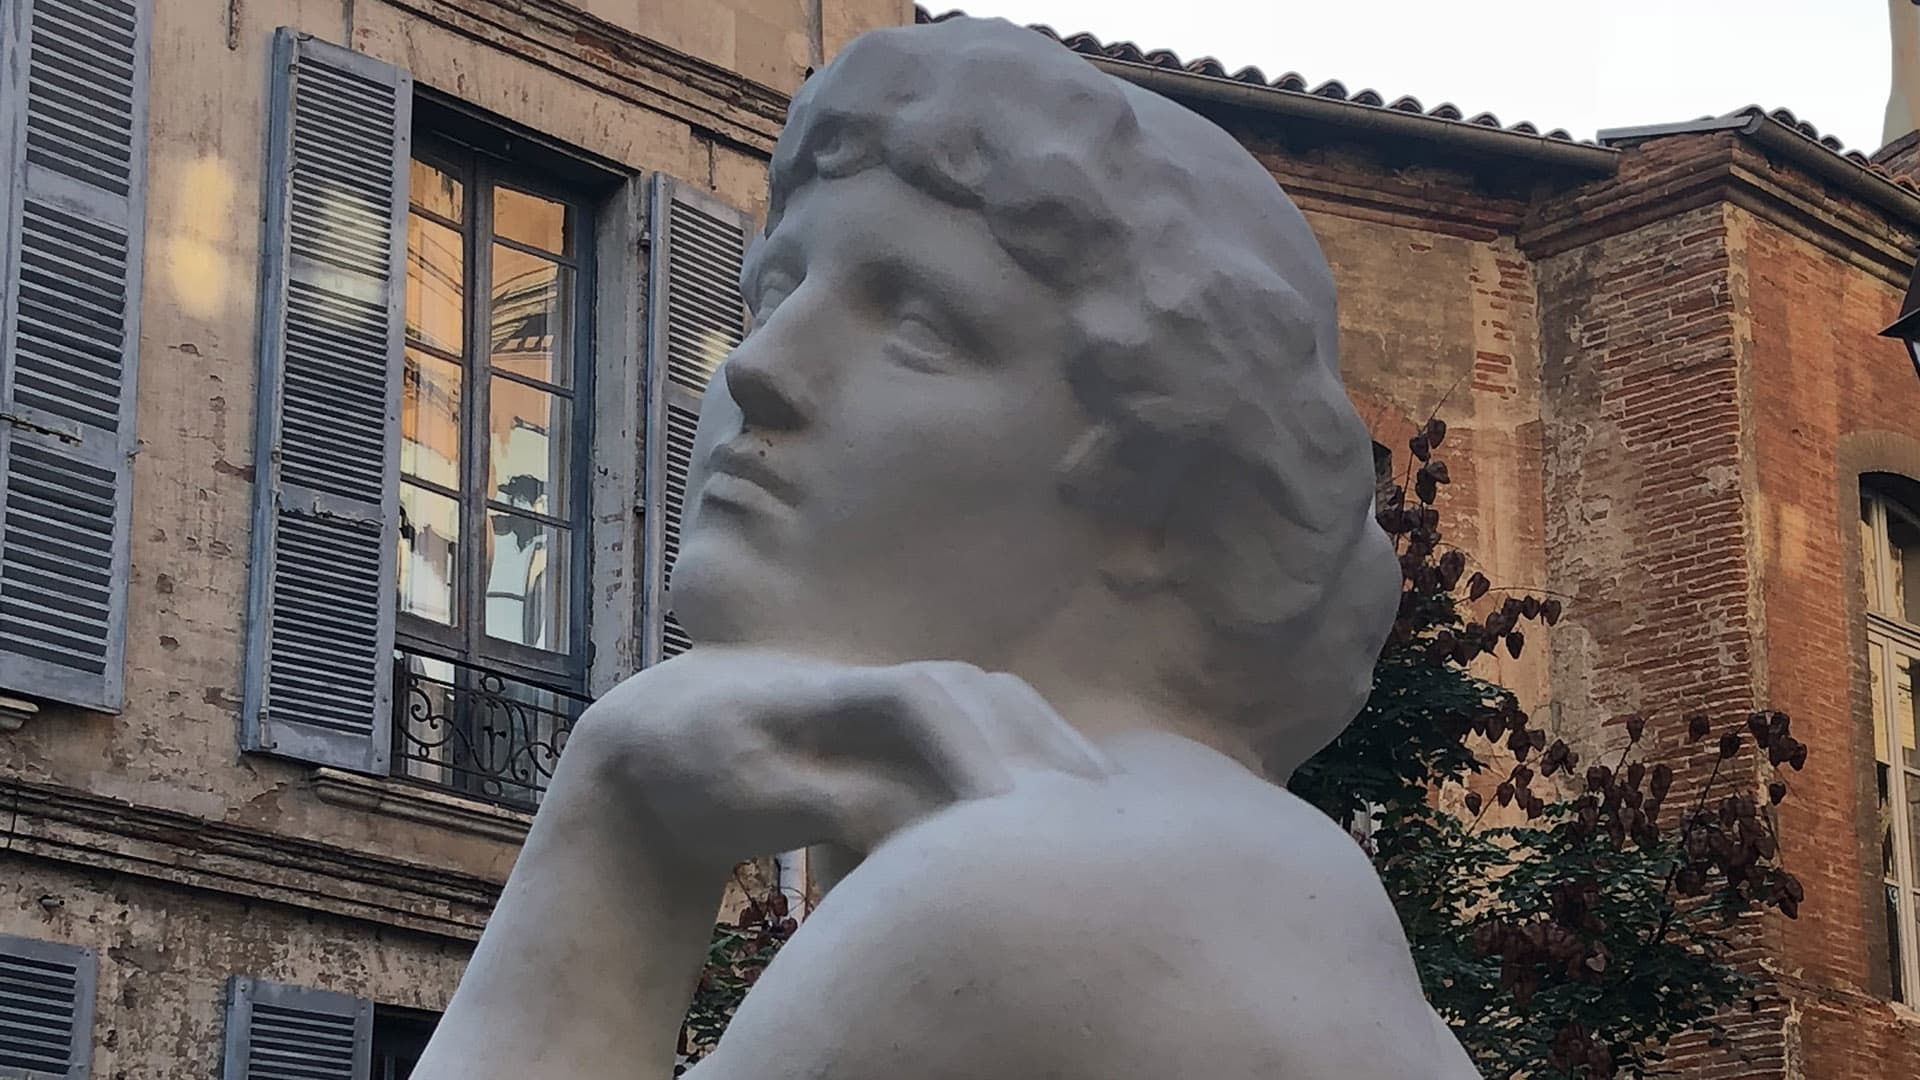 Digital restoration of a sculpture of José Clara